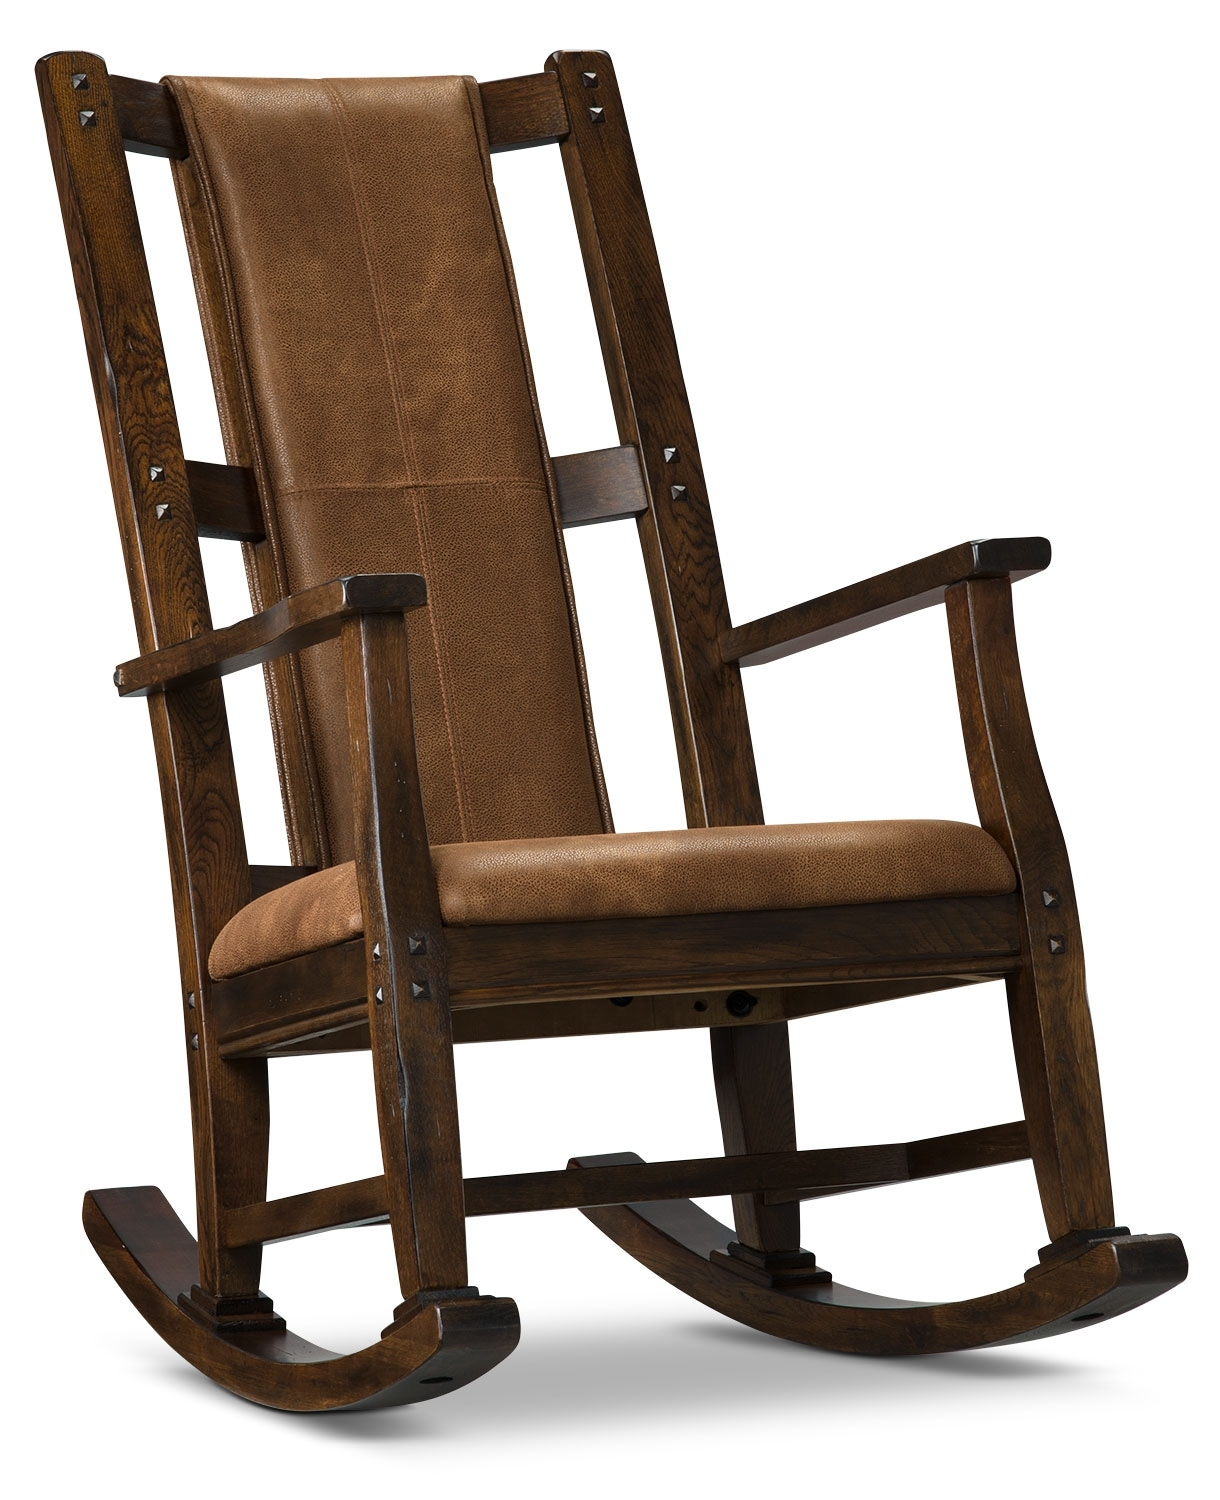 Zenica Rocking Chair